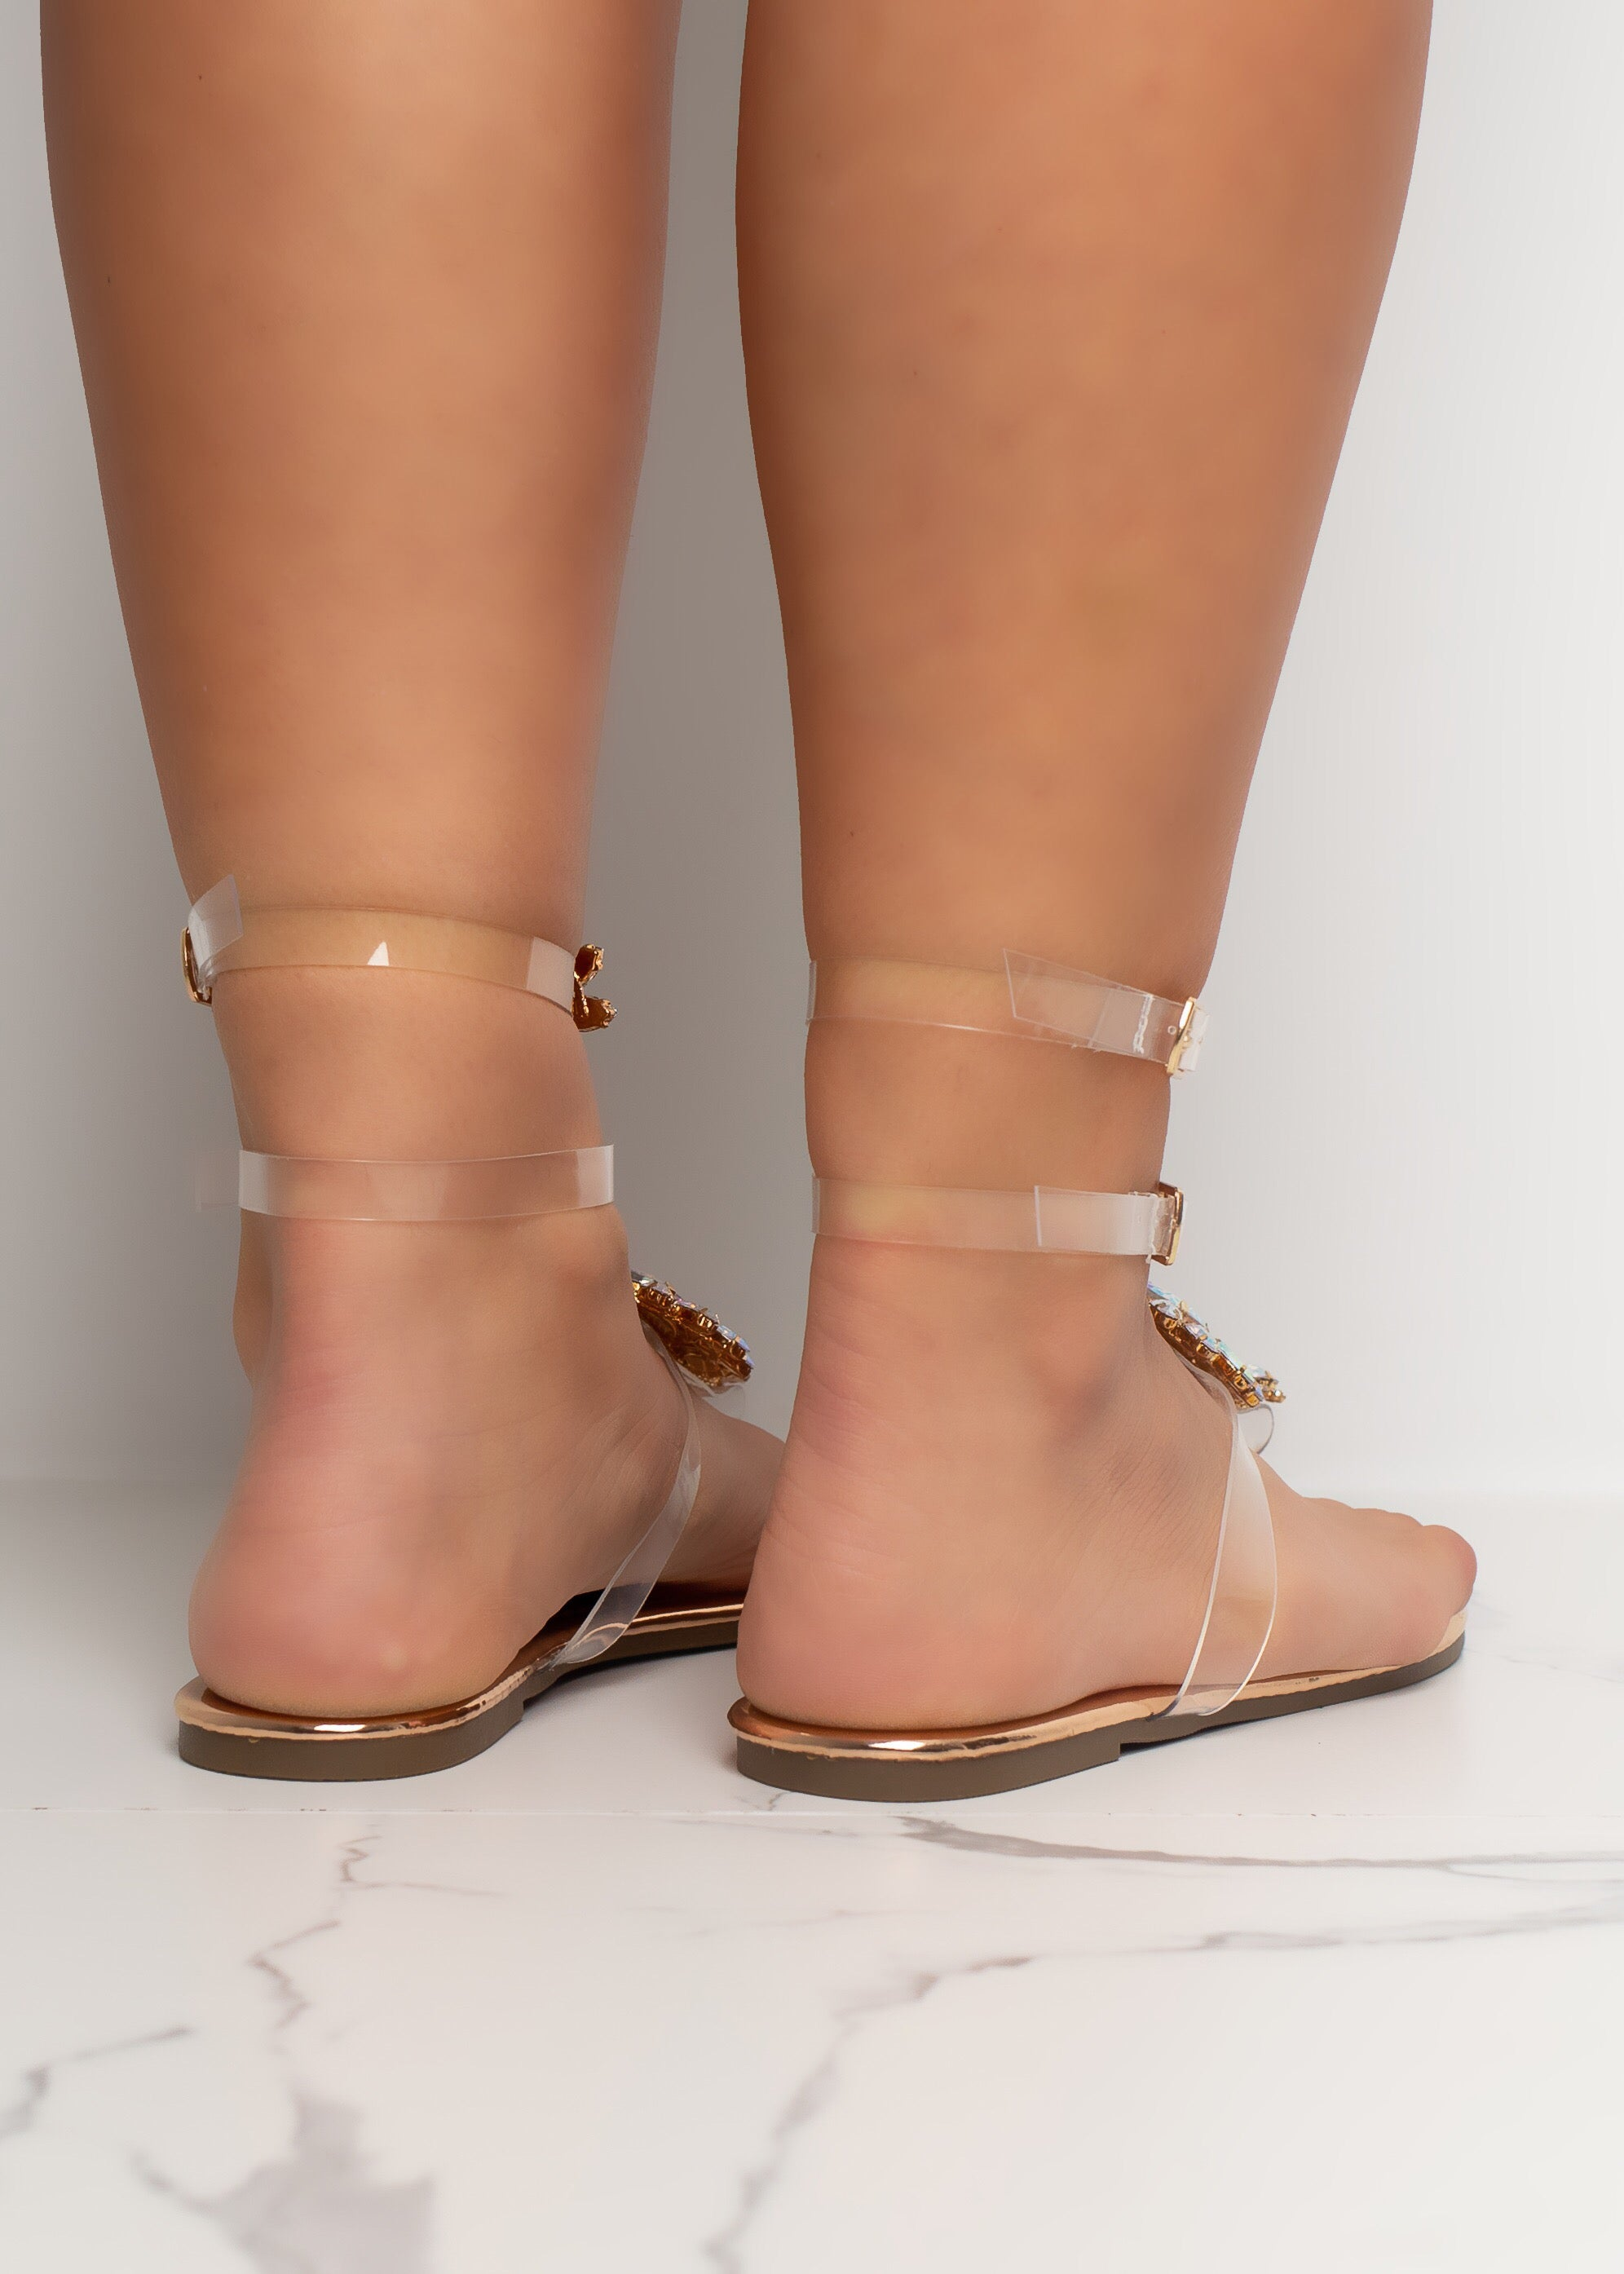 St. Tropez Rose Gold Crystal Sandal